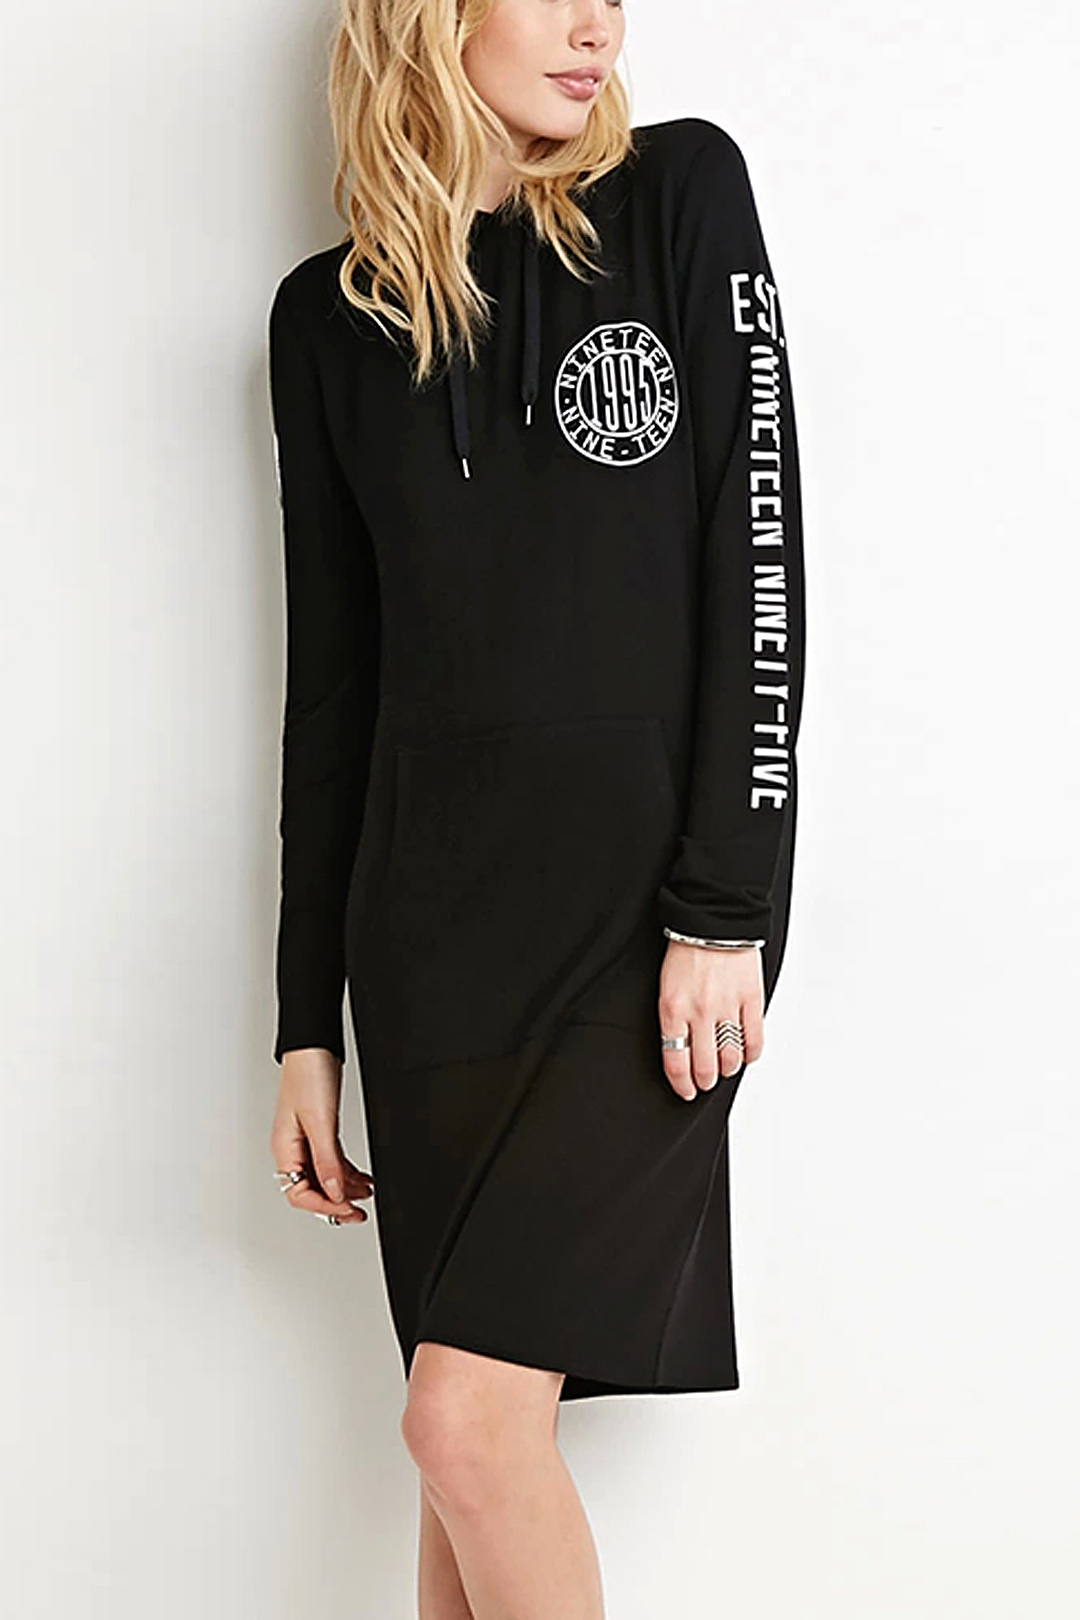 Sports Hooded Long Sleeves Alphabet Pattern Dress